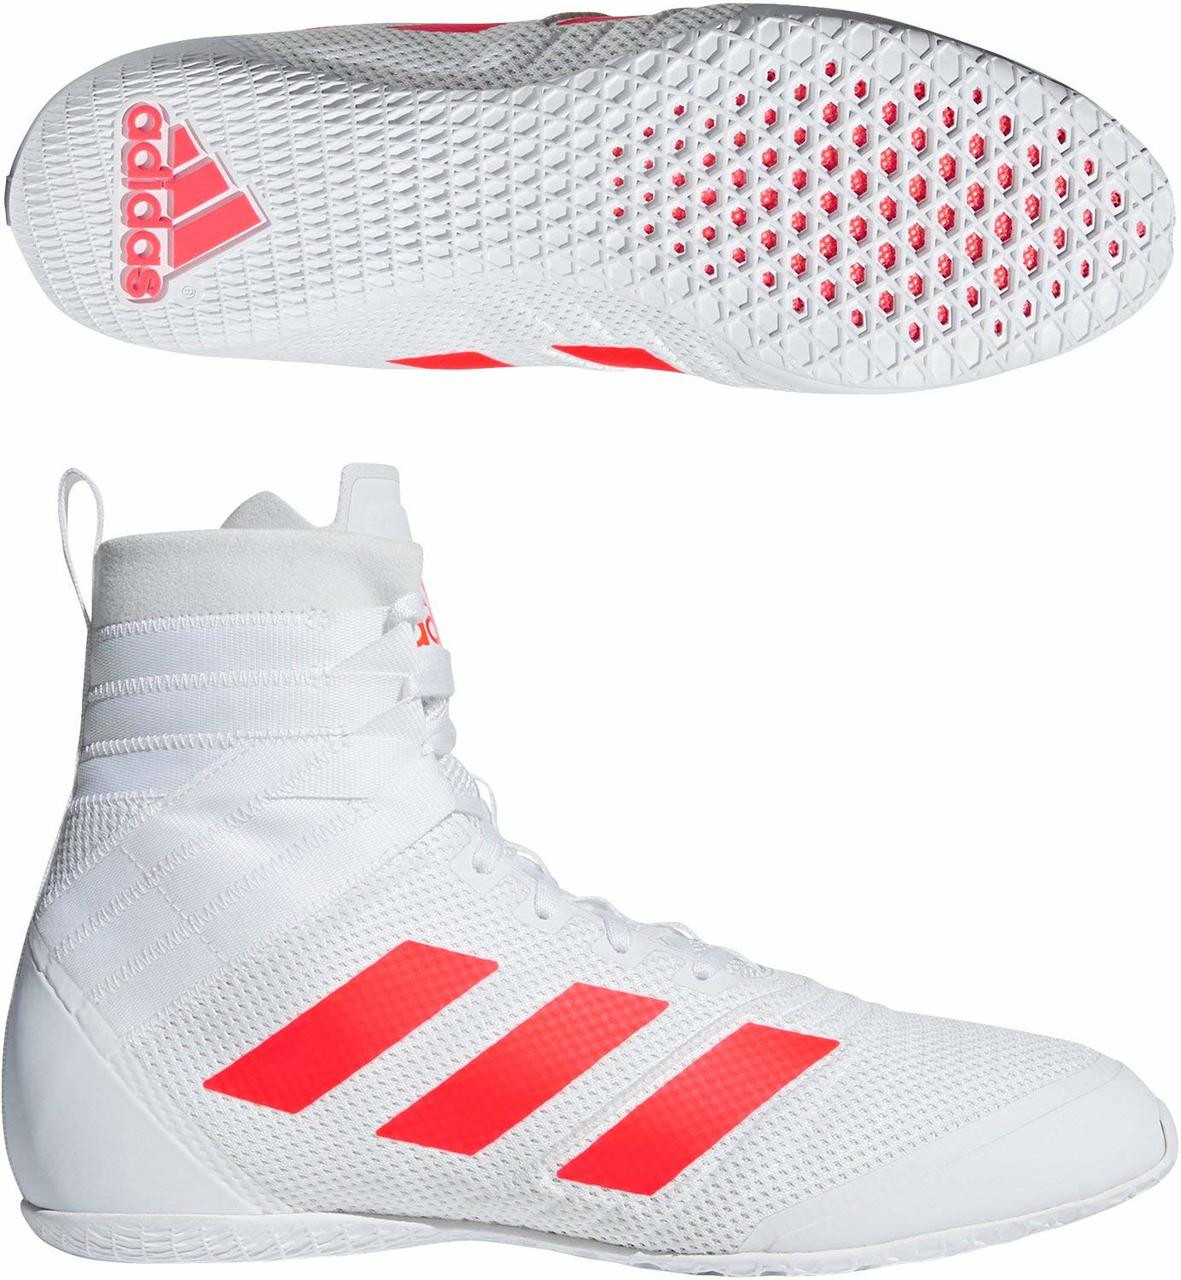 Boxing News Product review – adidas Speedex 16.1 BOOST